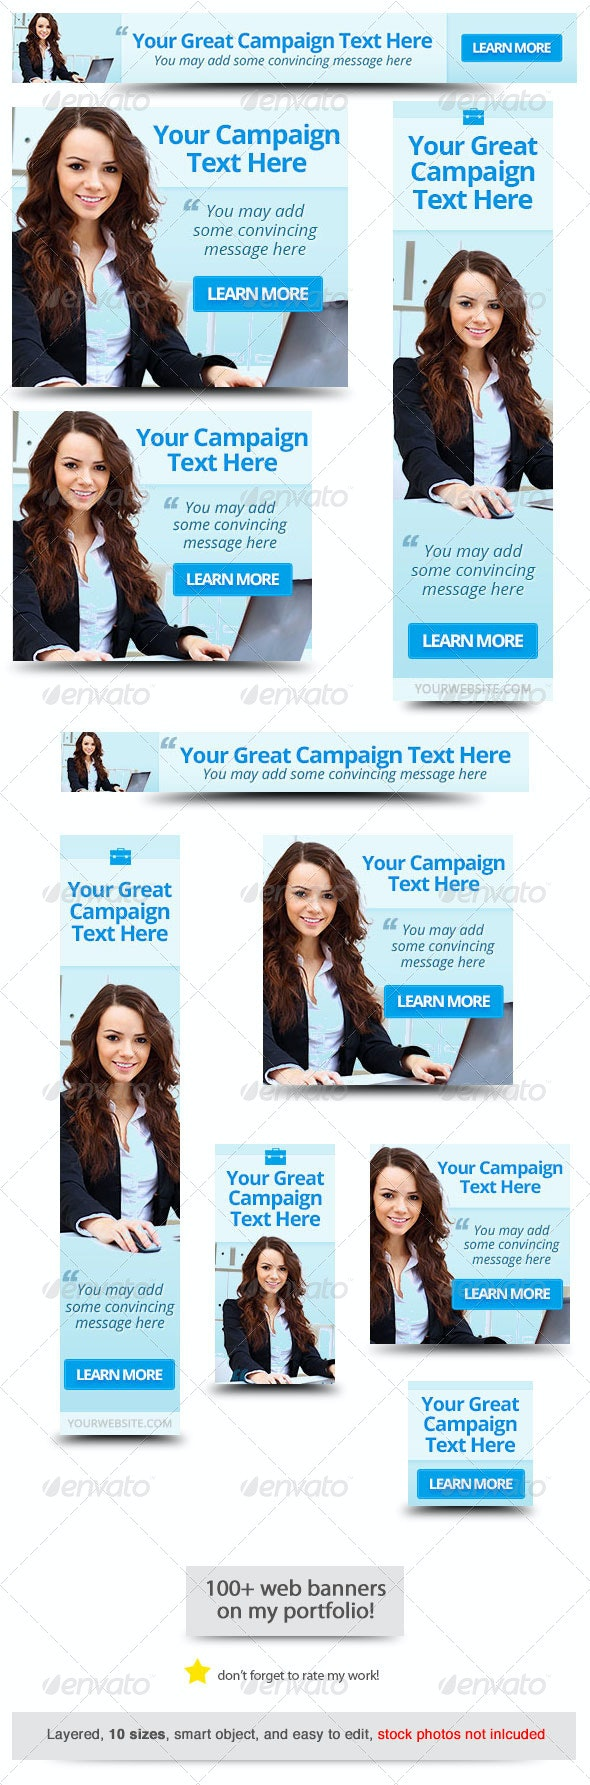 Corporate Web Banner Design Template 48 - Banners & Ads Web Elements